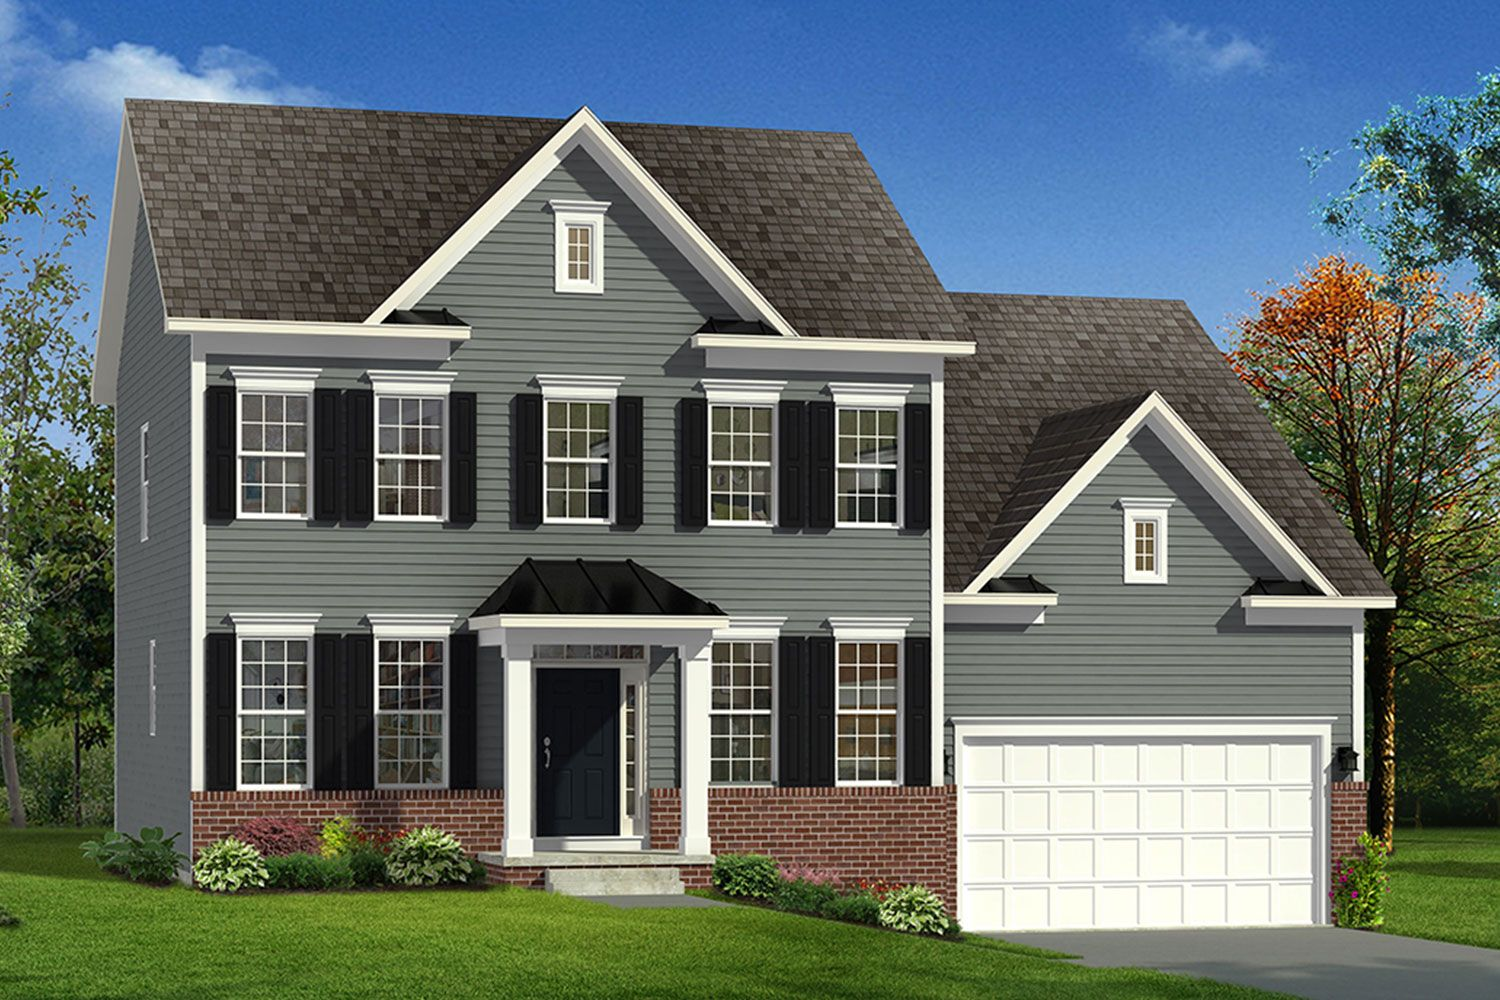 Fort washington new homes new homes for sale in fort for Modern homes for sale in maryland